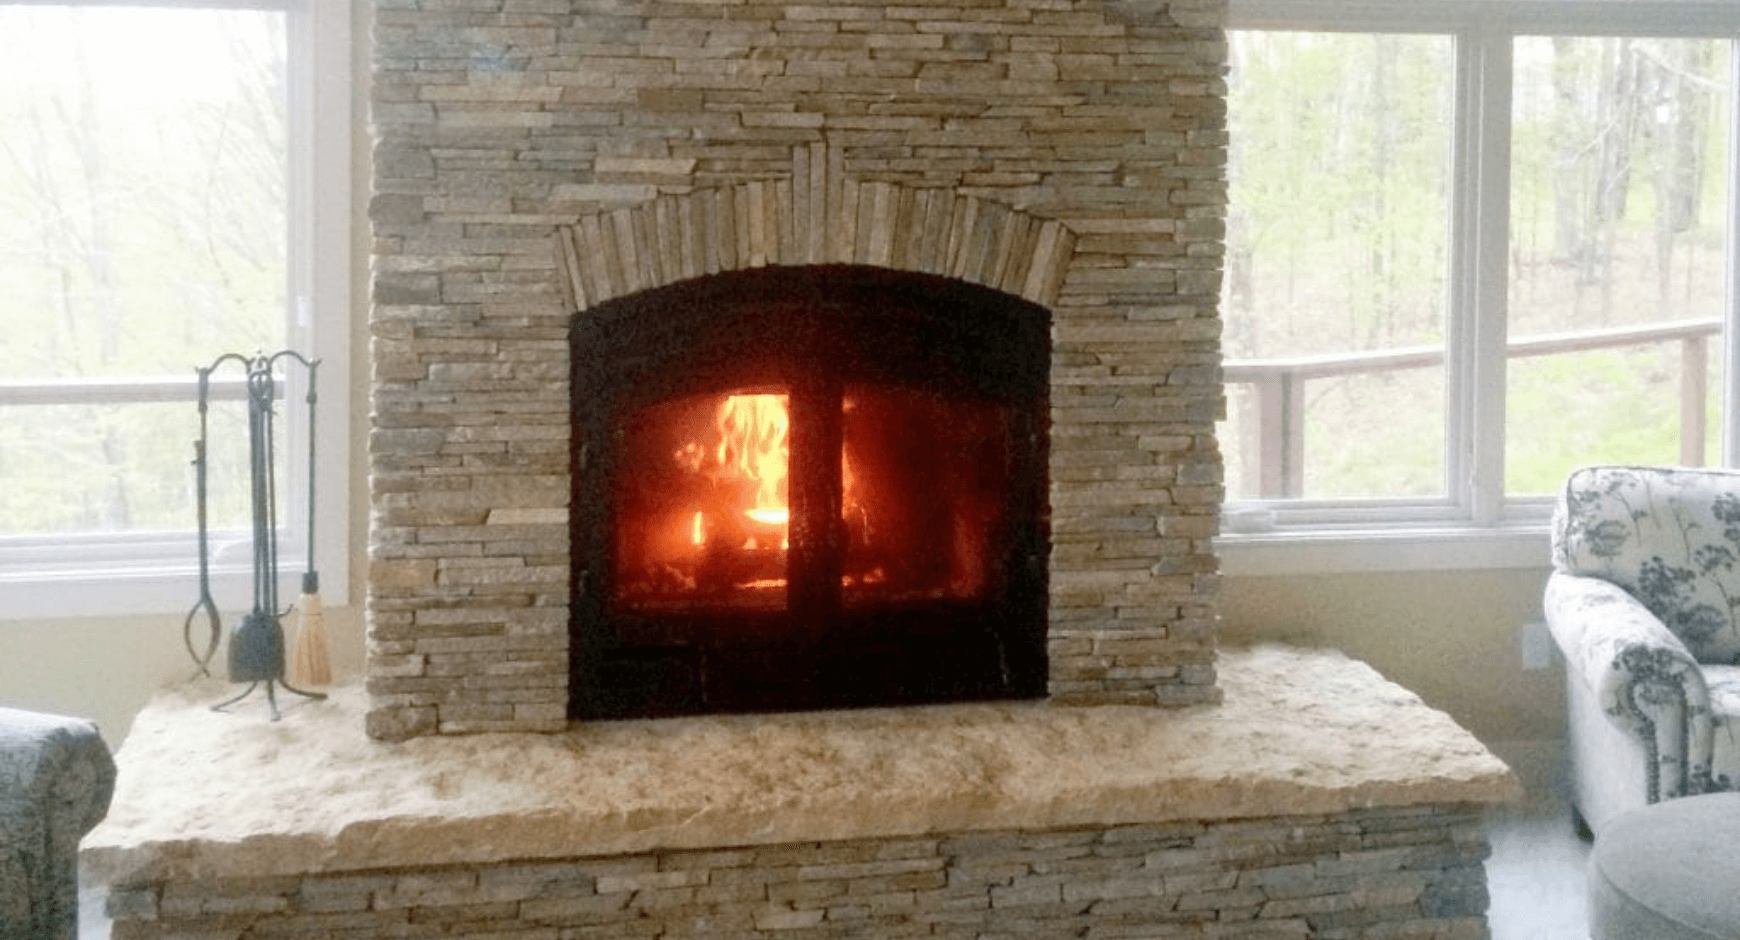 A lit fireplace surrounded by thin stacked stone